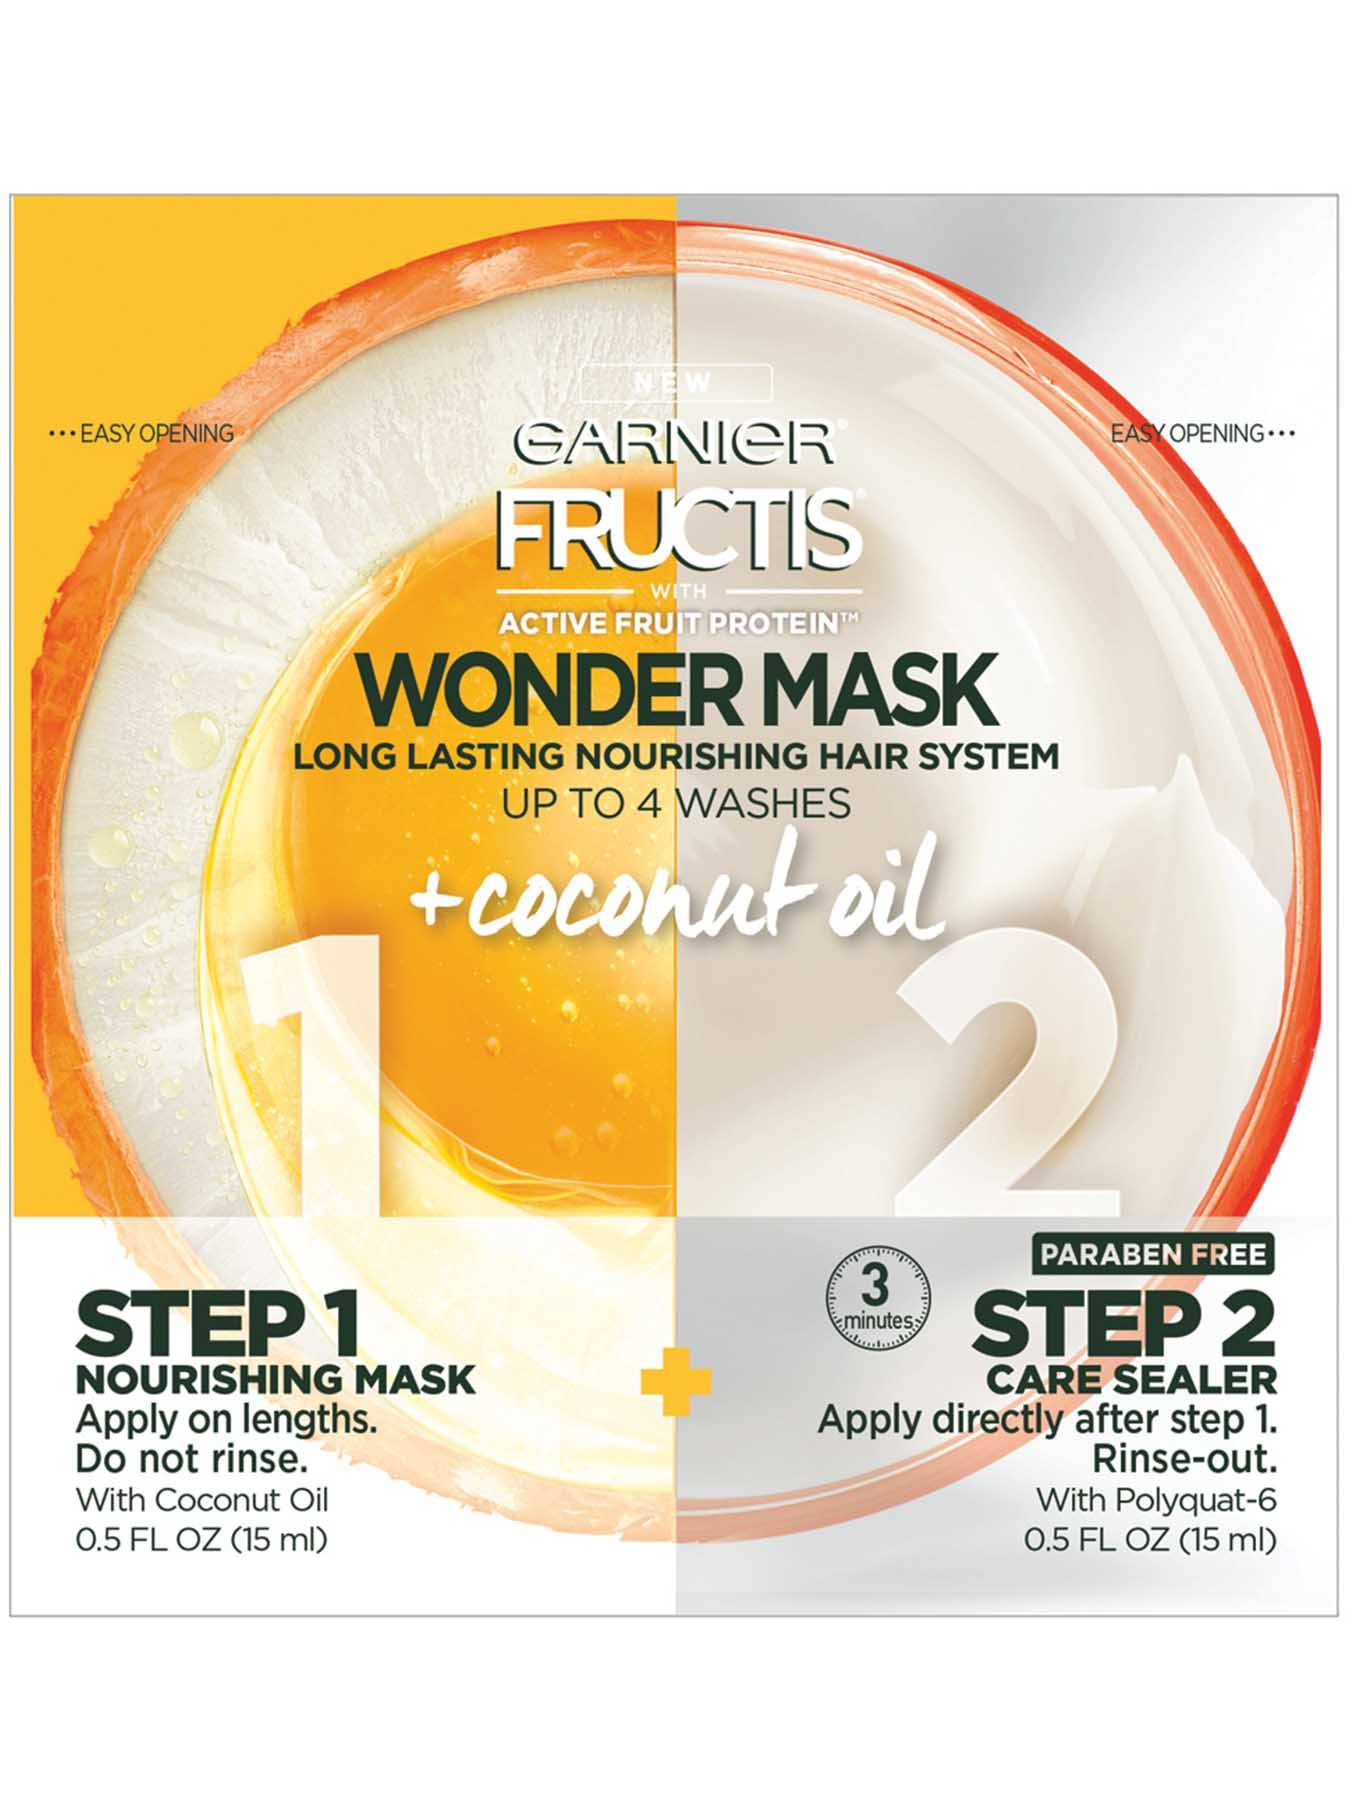 Front view of Wonder Mask with Active Fruit Protein Plus Coconut Oil.